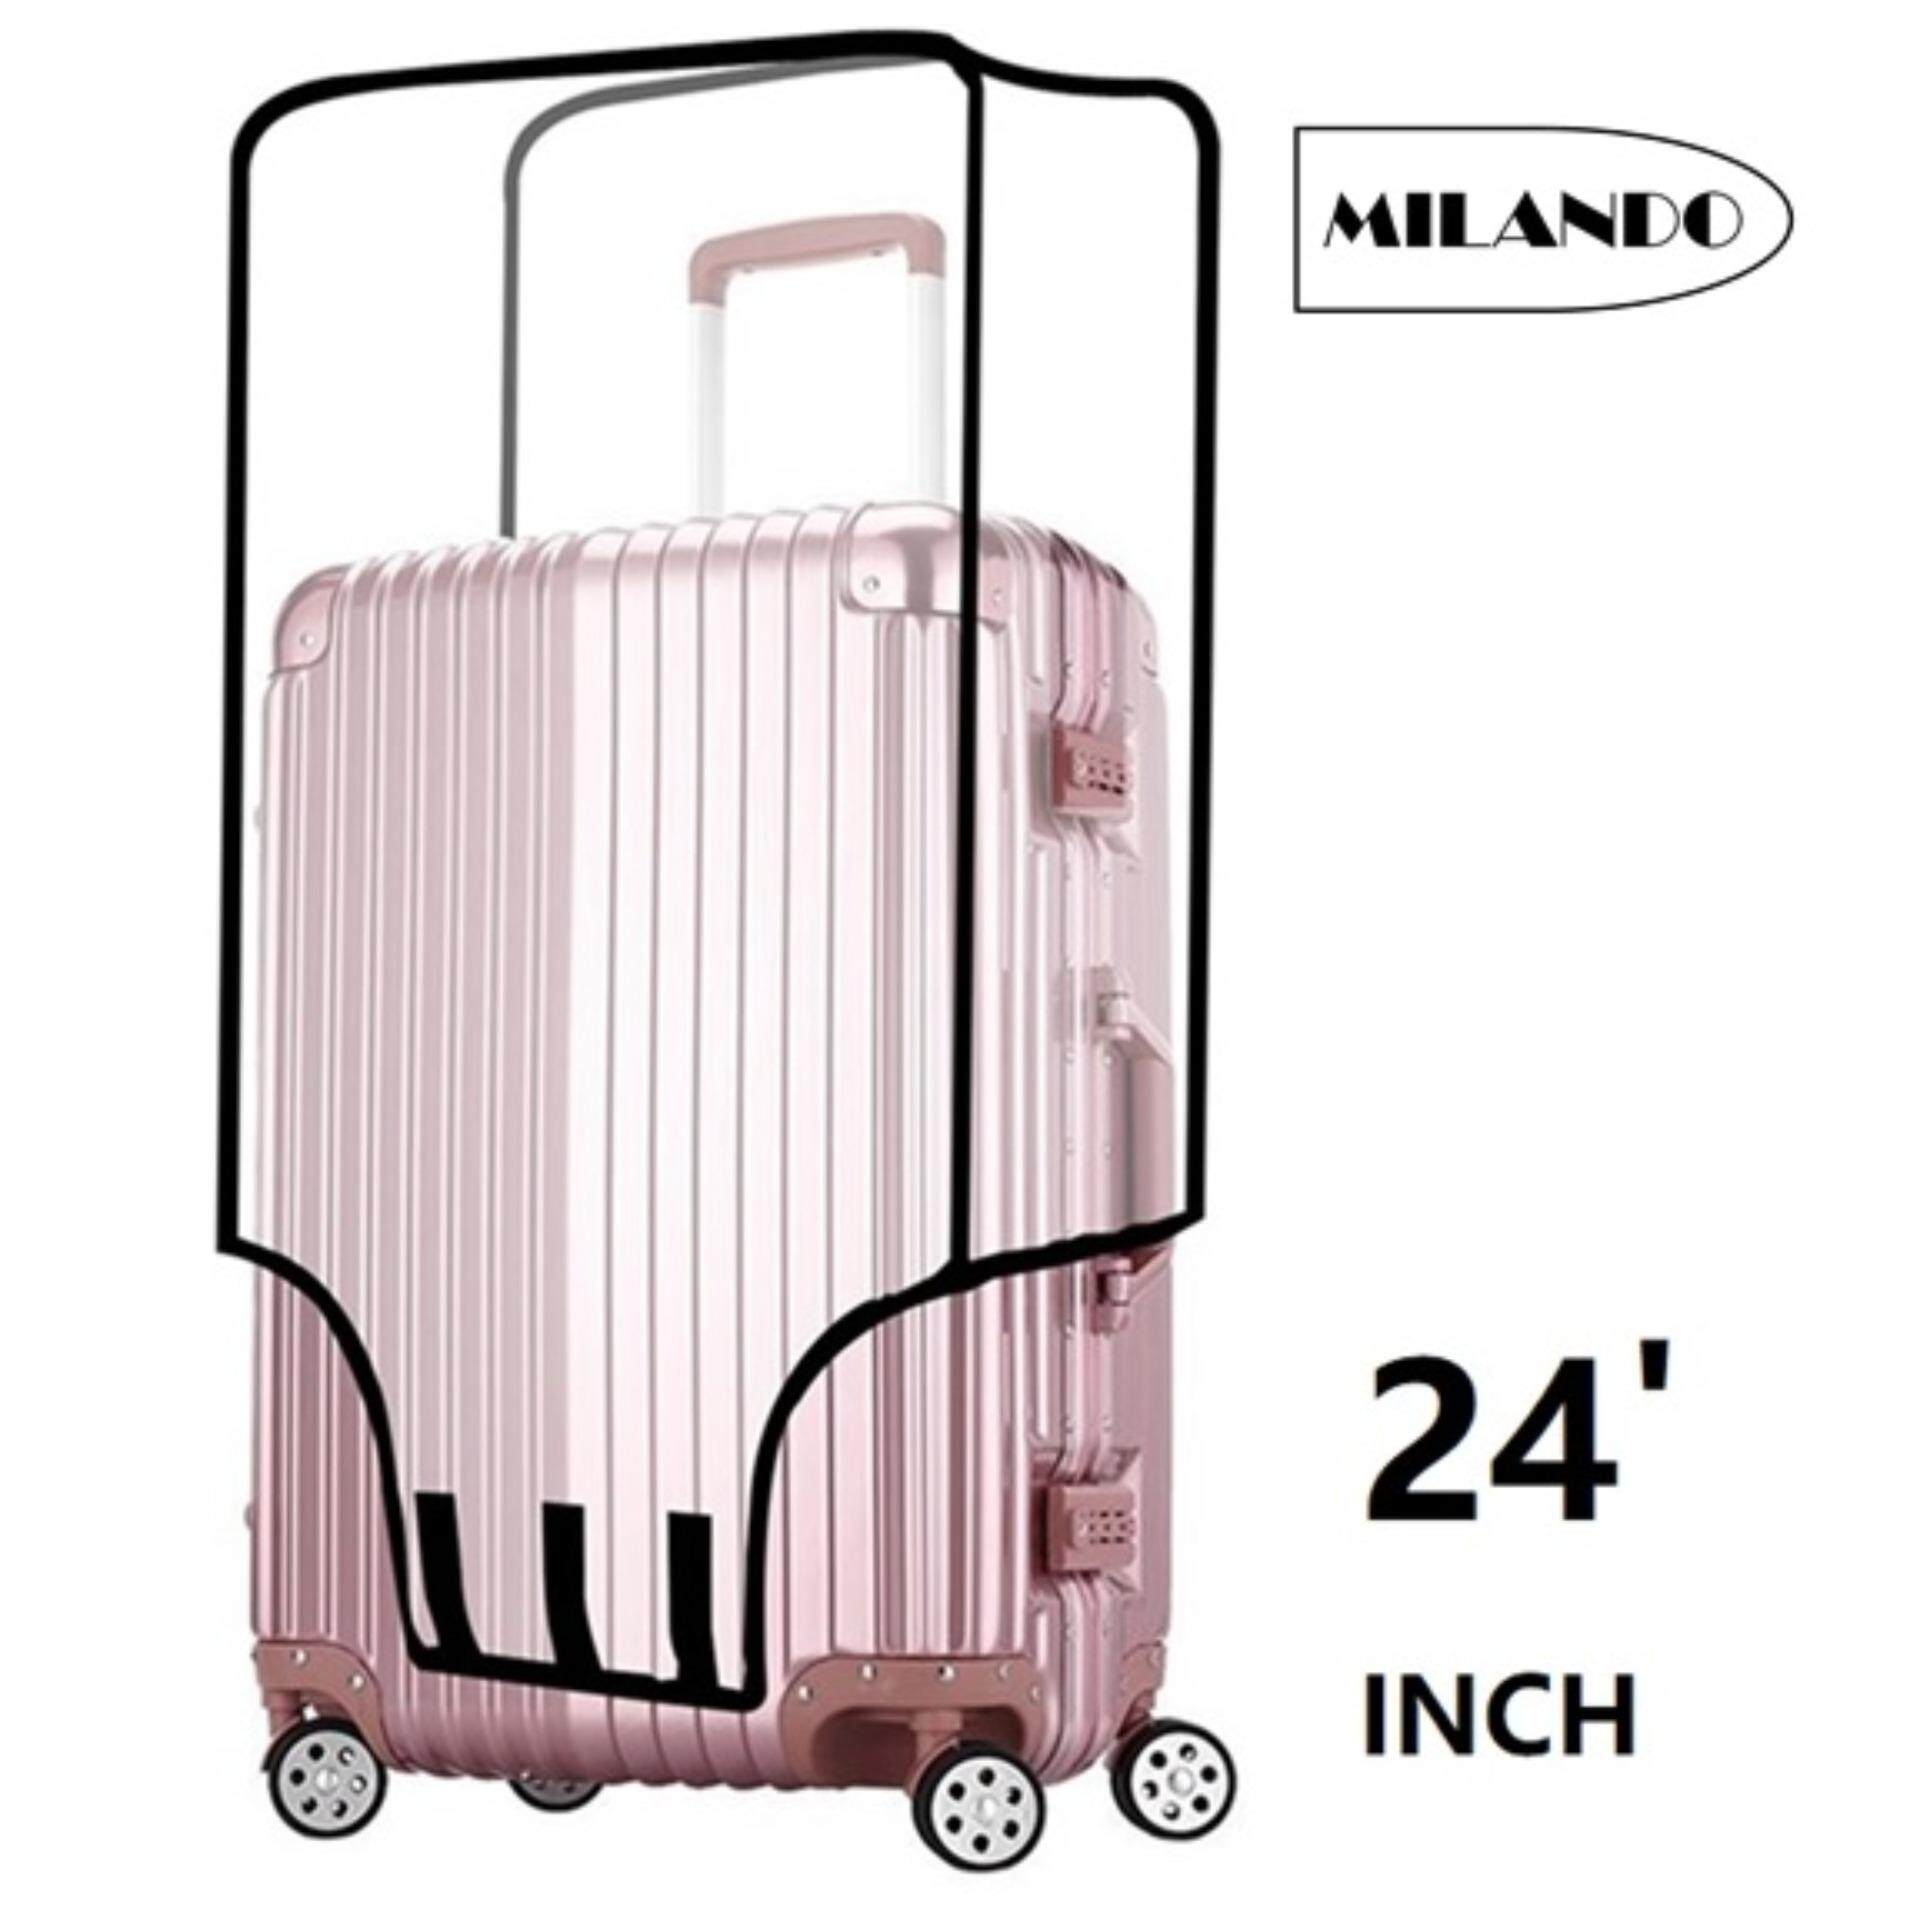 Fitur Tas Koper Fiber Polo Love Hardcase Luggage 24 Inch 8878 Traveling Hard Case 20 Expandable Cabin Travel Suitcase Dusk Proof Waterproof Semi Transparent Pvc Cover